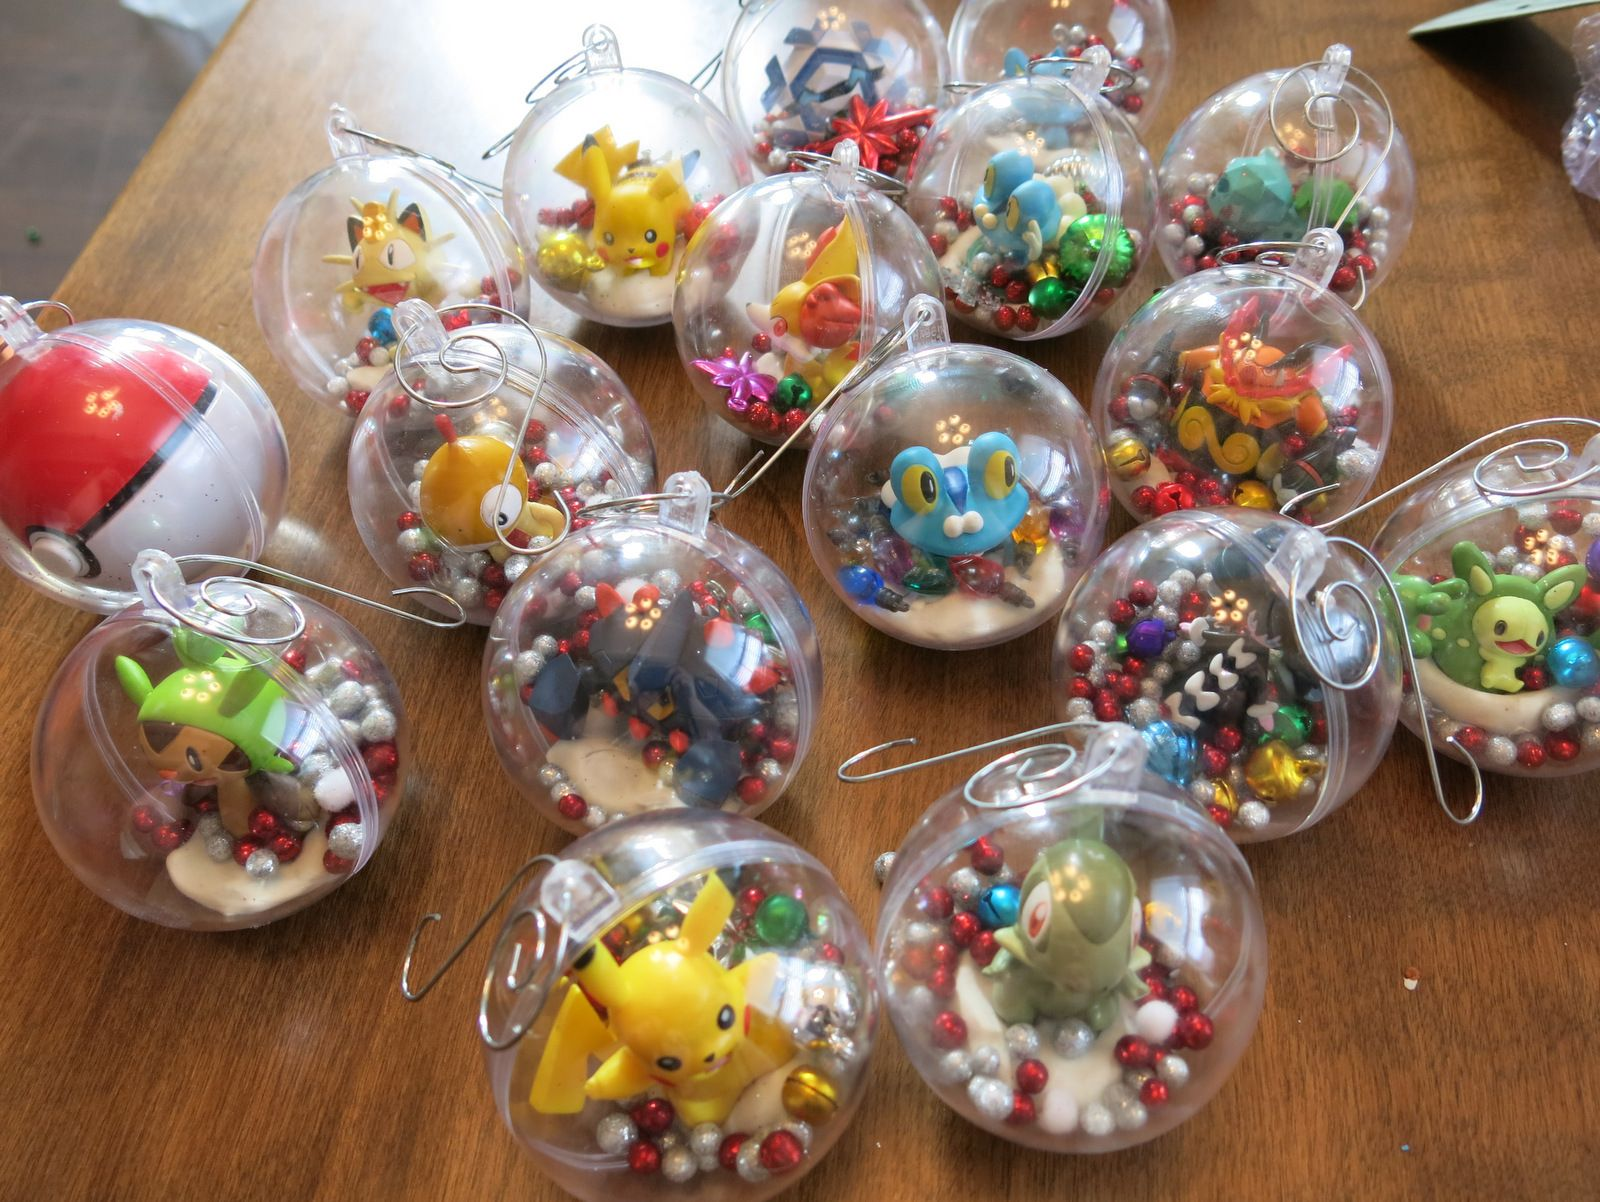 Clear christmas bulbs for crafting - Diy Pokemon Christmas Decorations Ornaments